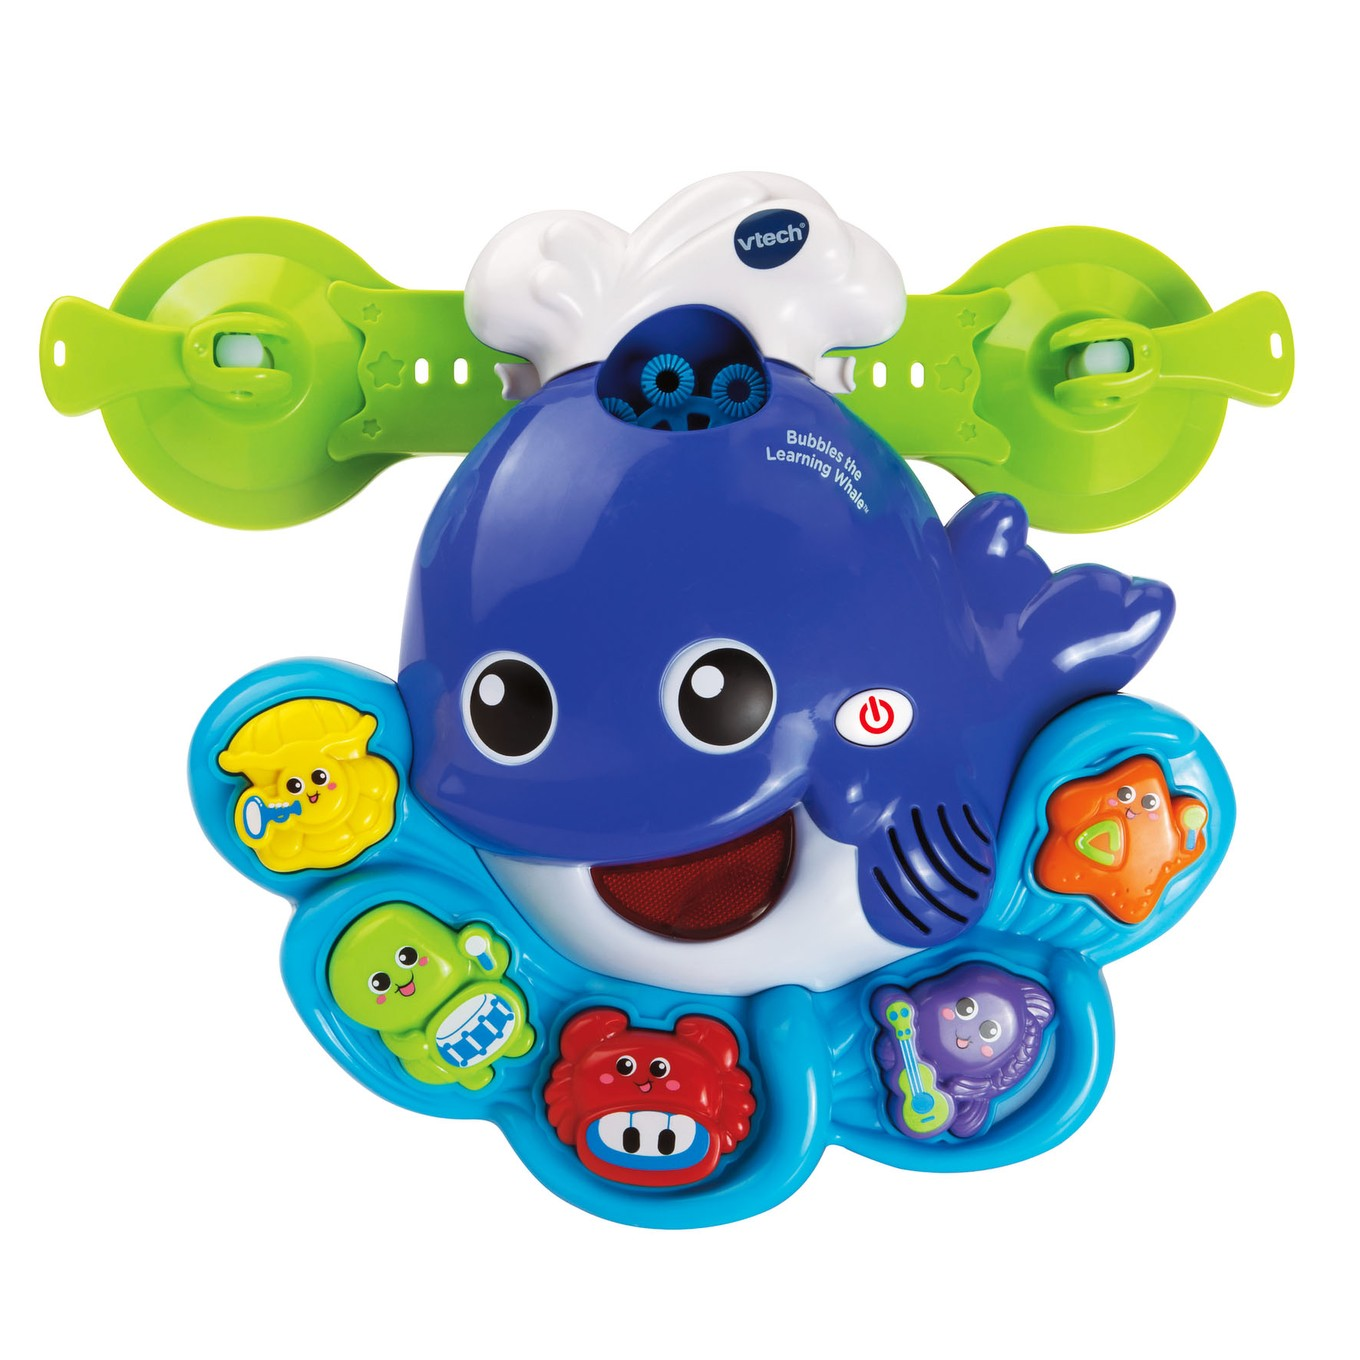 Bubbles the Learning Whale І VTechKids.com